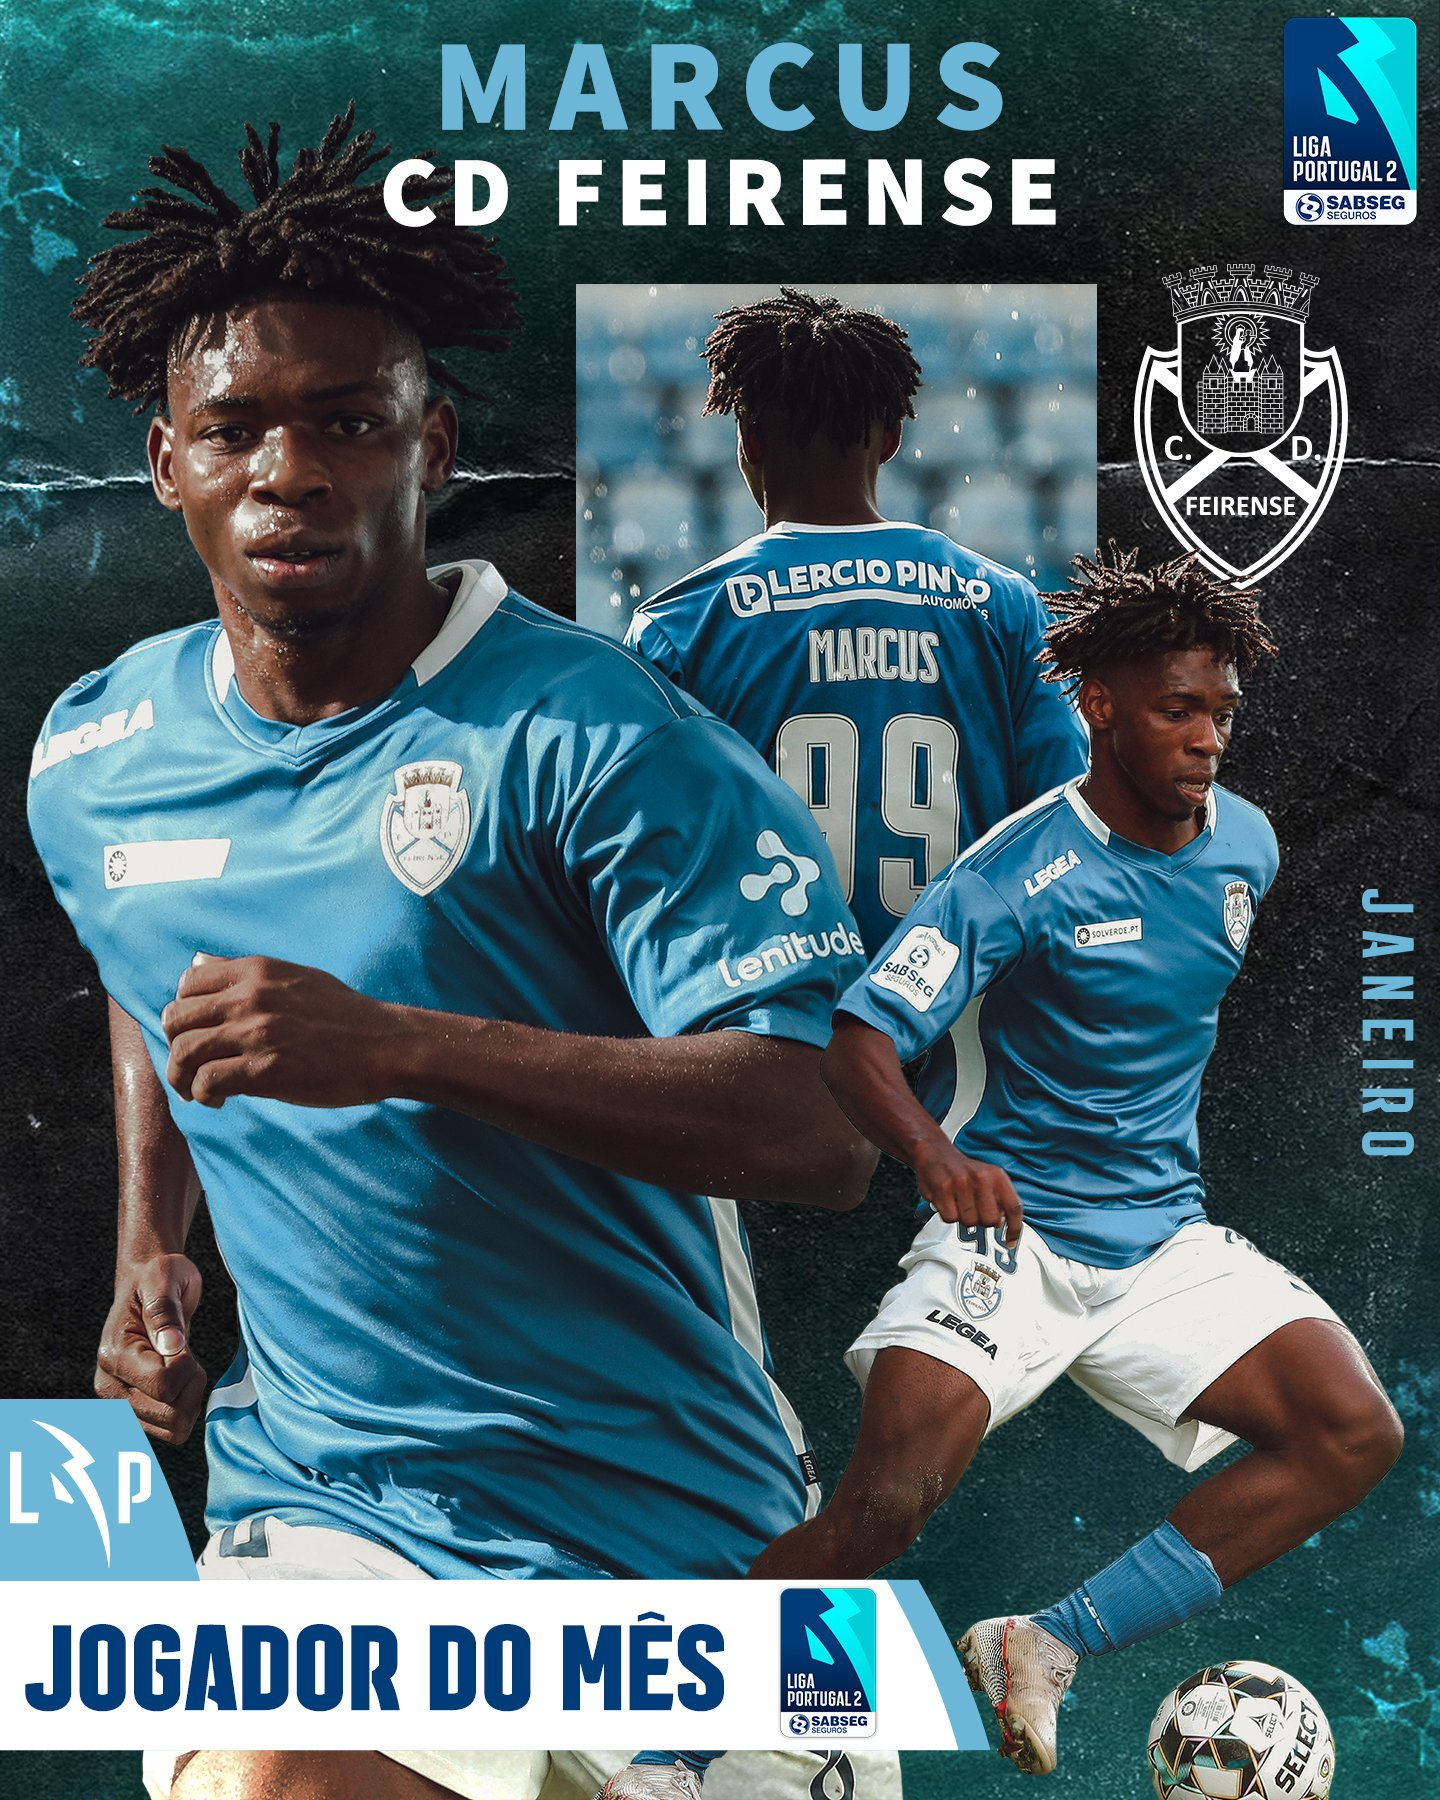 Nigerian Striker   Marcus Named Portuguese Liga 2 Player Of The Month For January